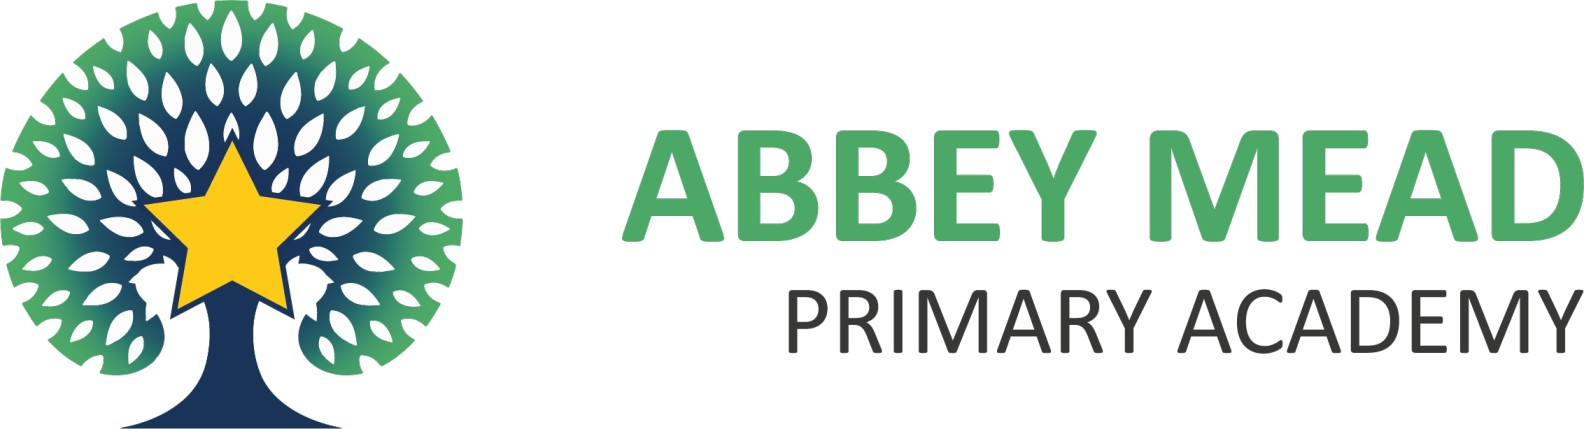 Abbey Mead Primary Academy